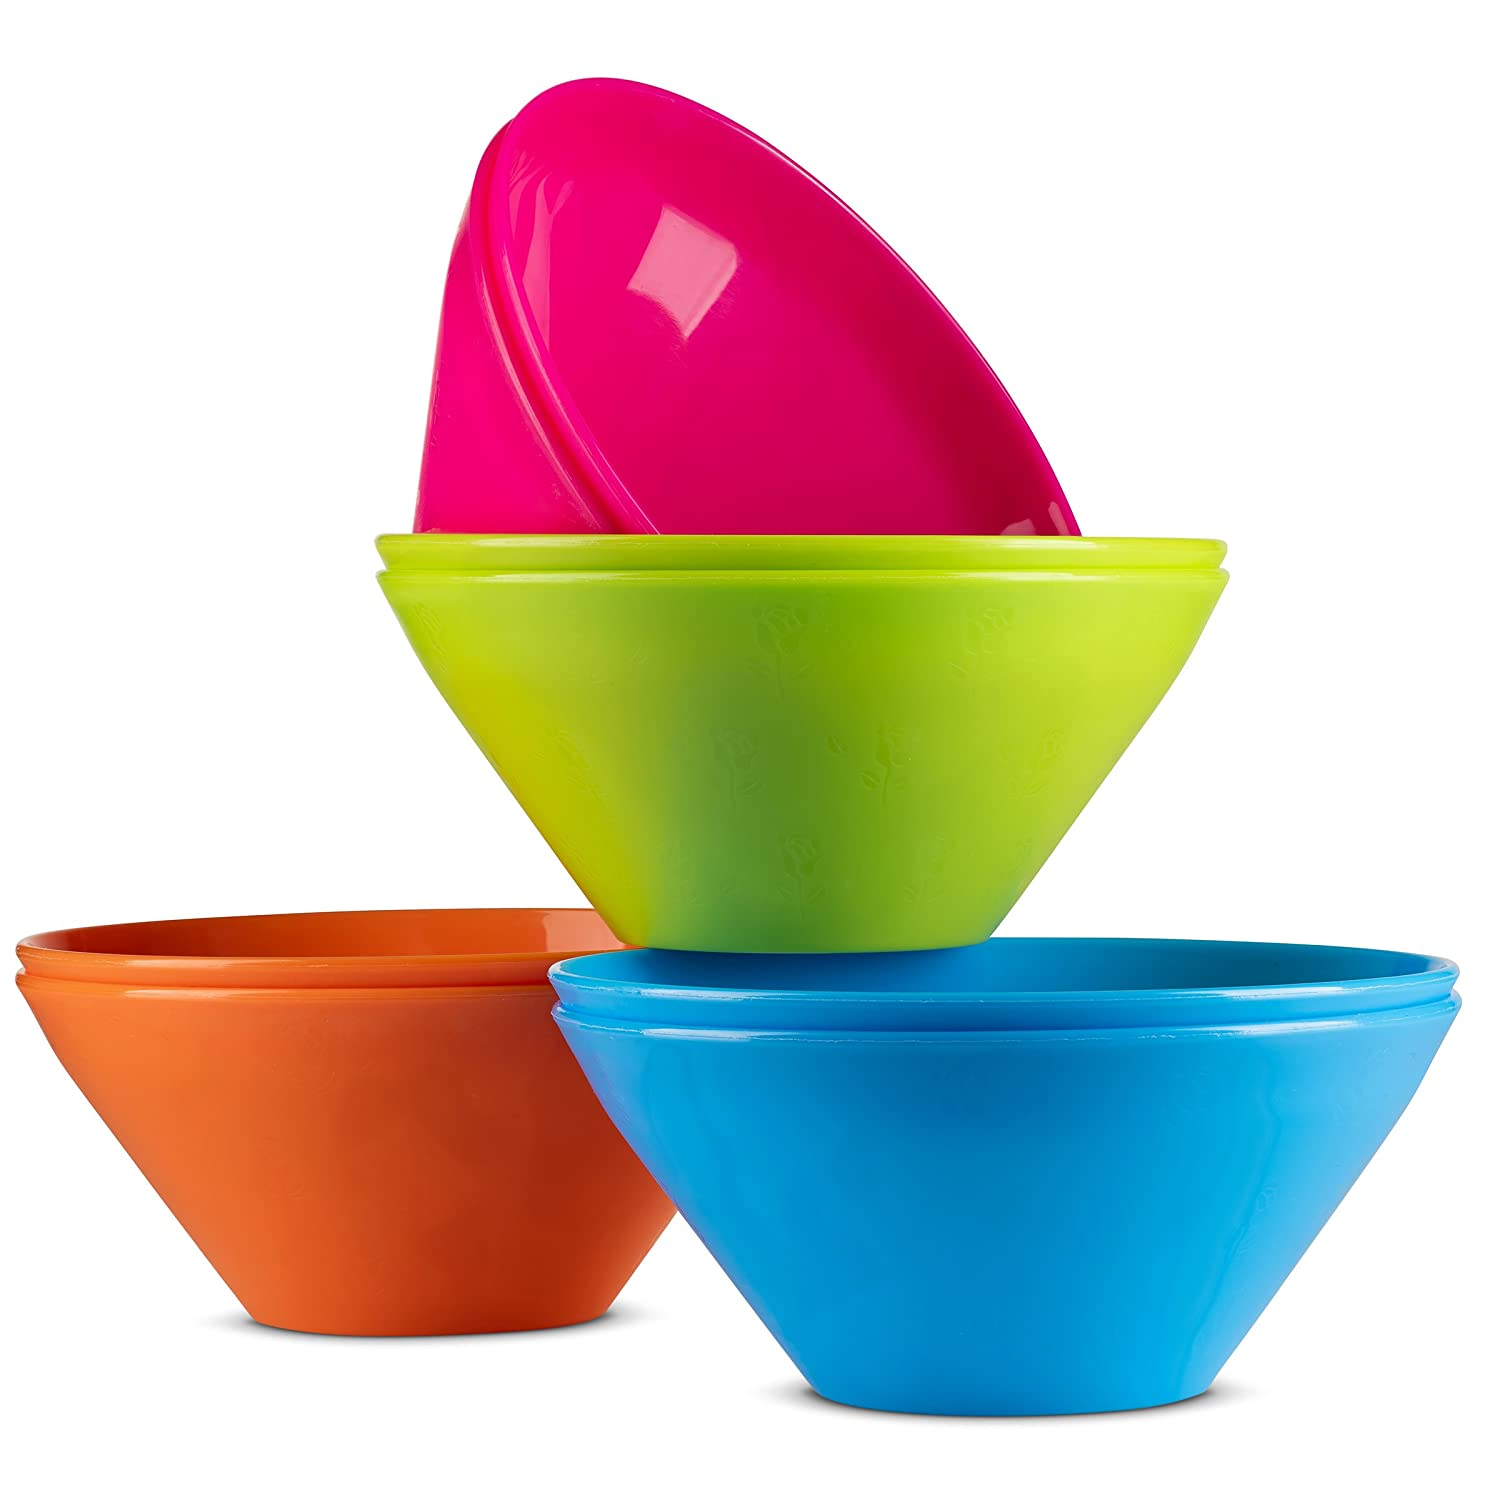 Kids Plastic Bowls By Plaskidy - Kids Bowl Set includes 8 Small Plastic Bowls 15 OZ Microwave/Dishwasher Safe, BPA Free, 4 Bright Colors, Great for Baby/Toddler Soup Bowls, Cereal Bowls, Snack Bowls.